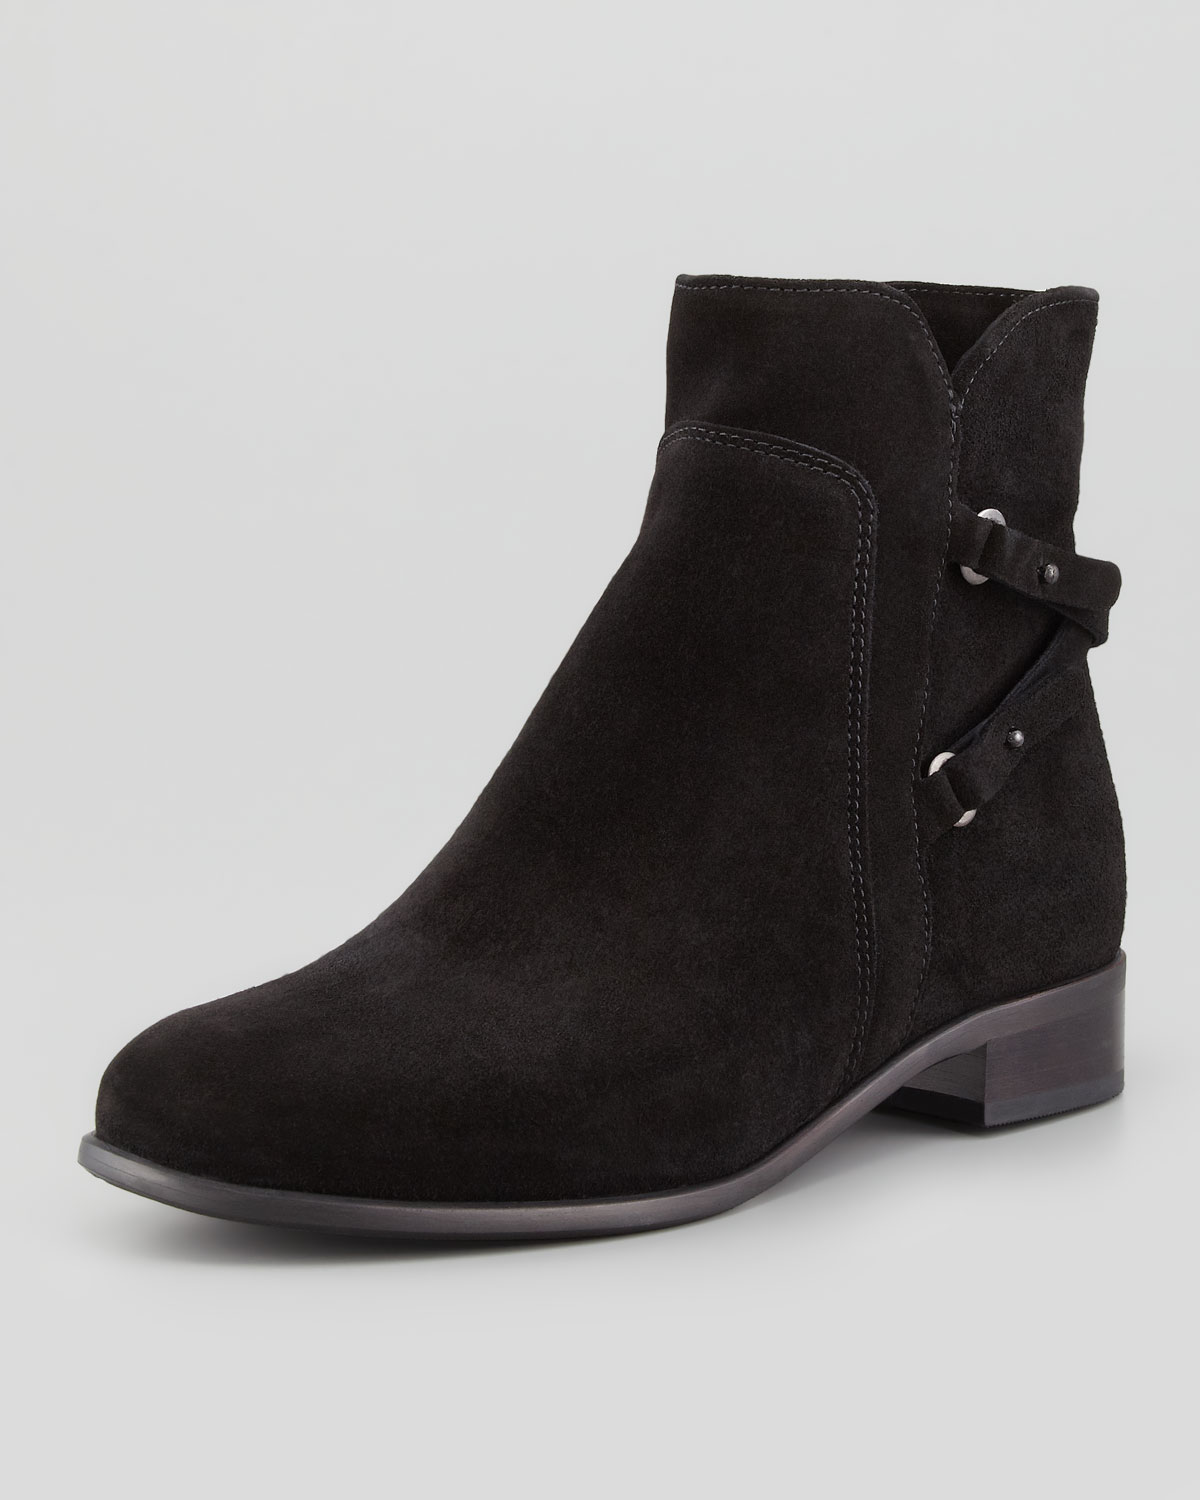 La Canadienne Sharon Suede Chelsea Boot Black Lyst